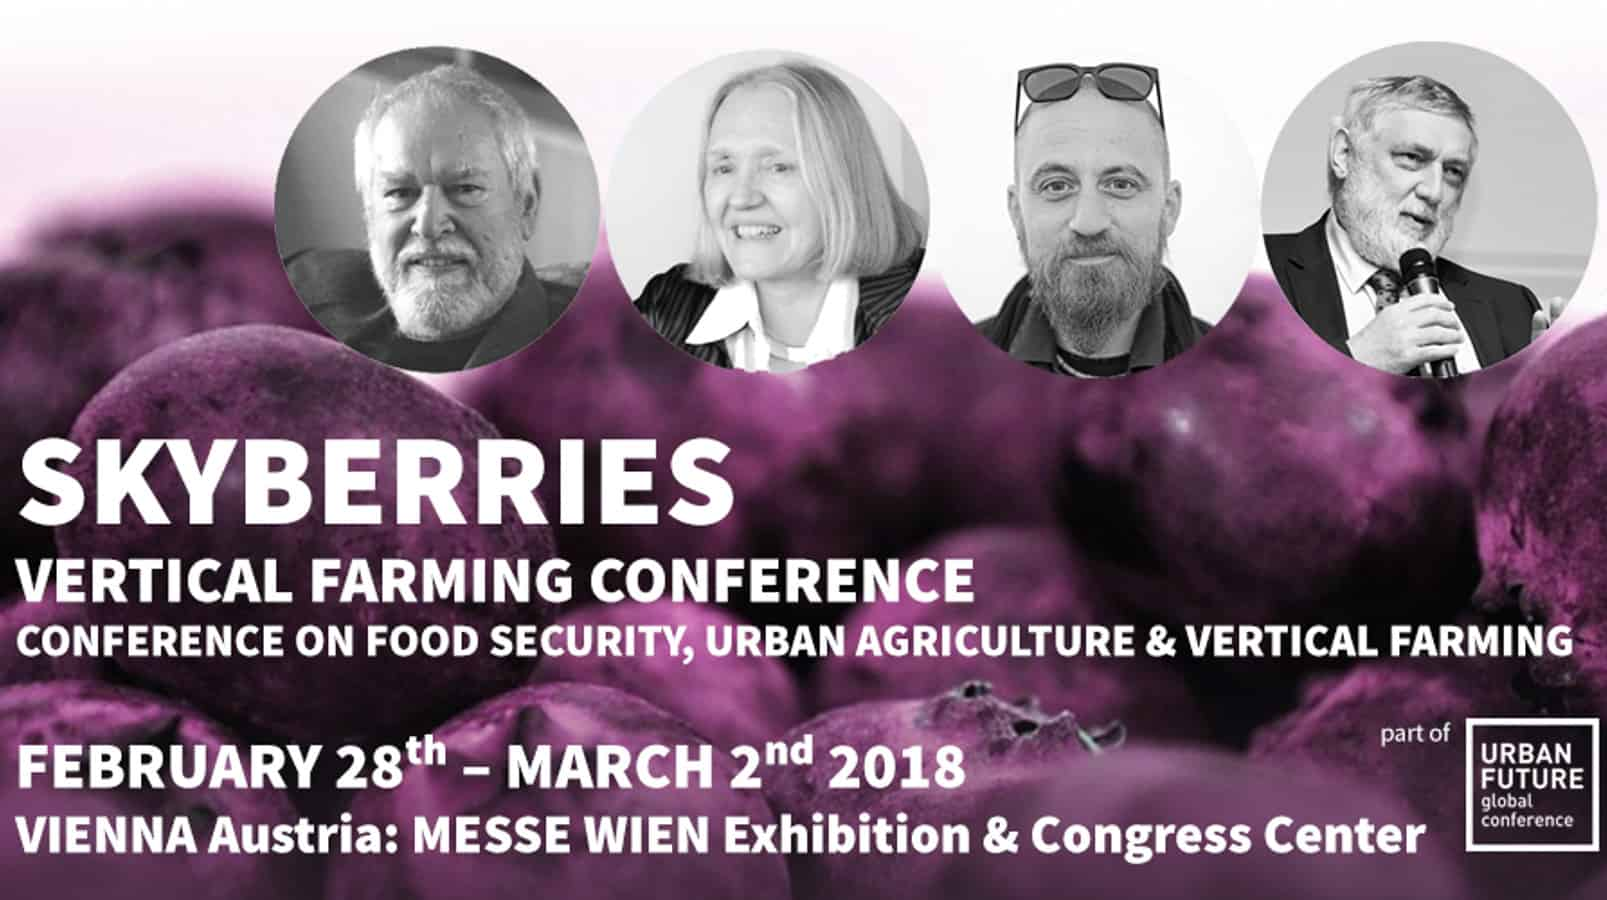 SKYBERRIES, the first vertical farming conference in the German-speaking market, invites urban farmers, researchers, and pioneers to Vienna, Austria, to discuss the future of agriculture.